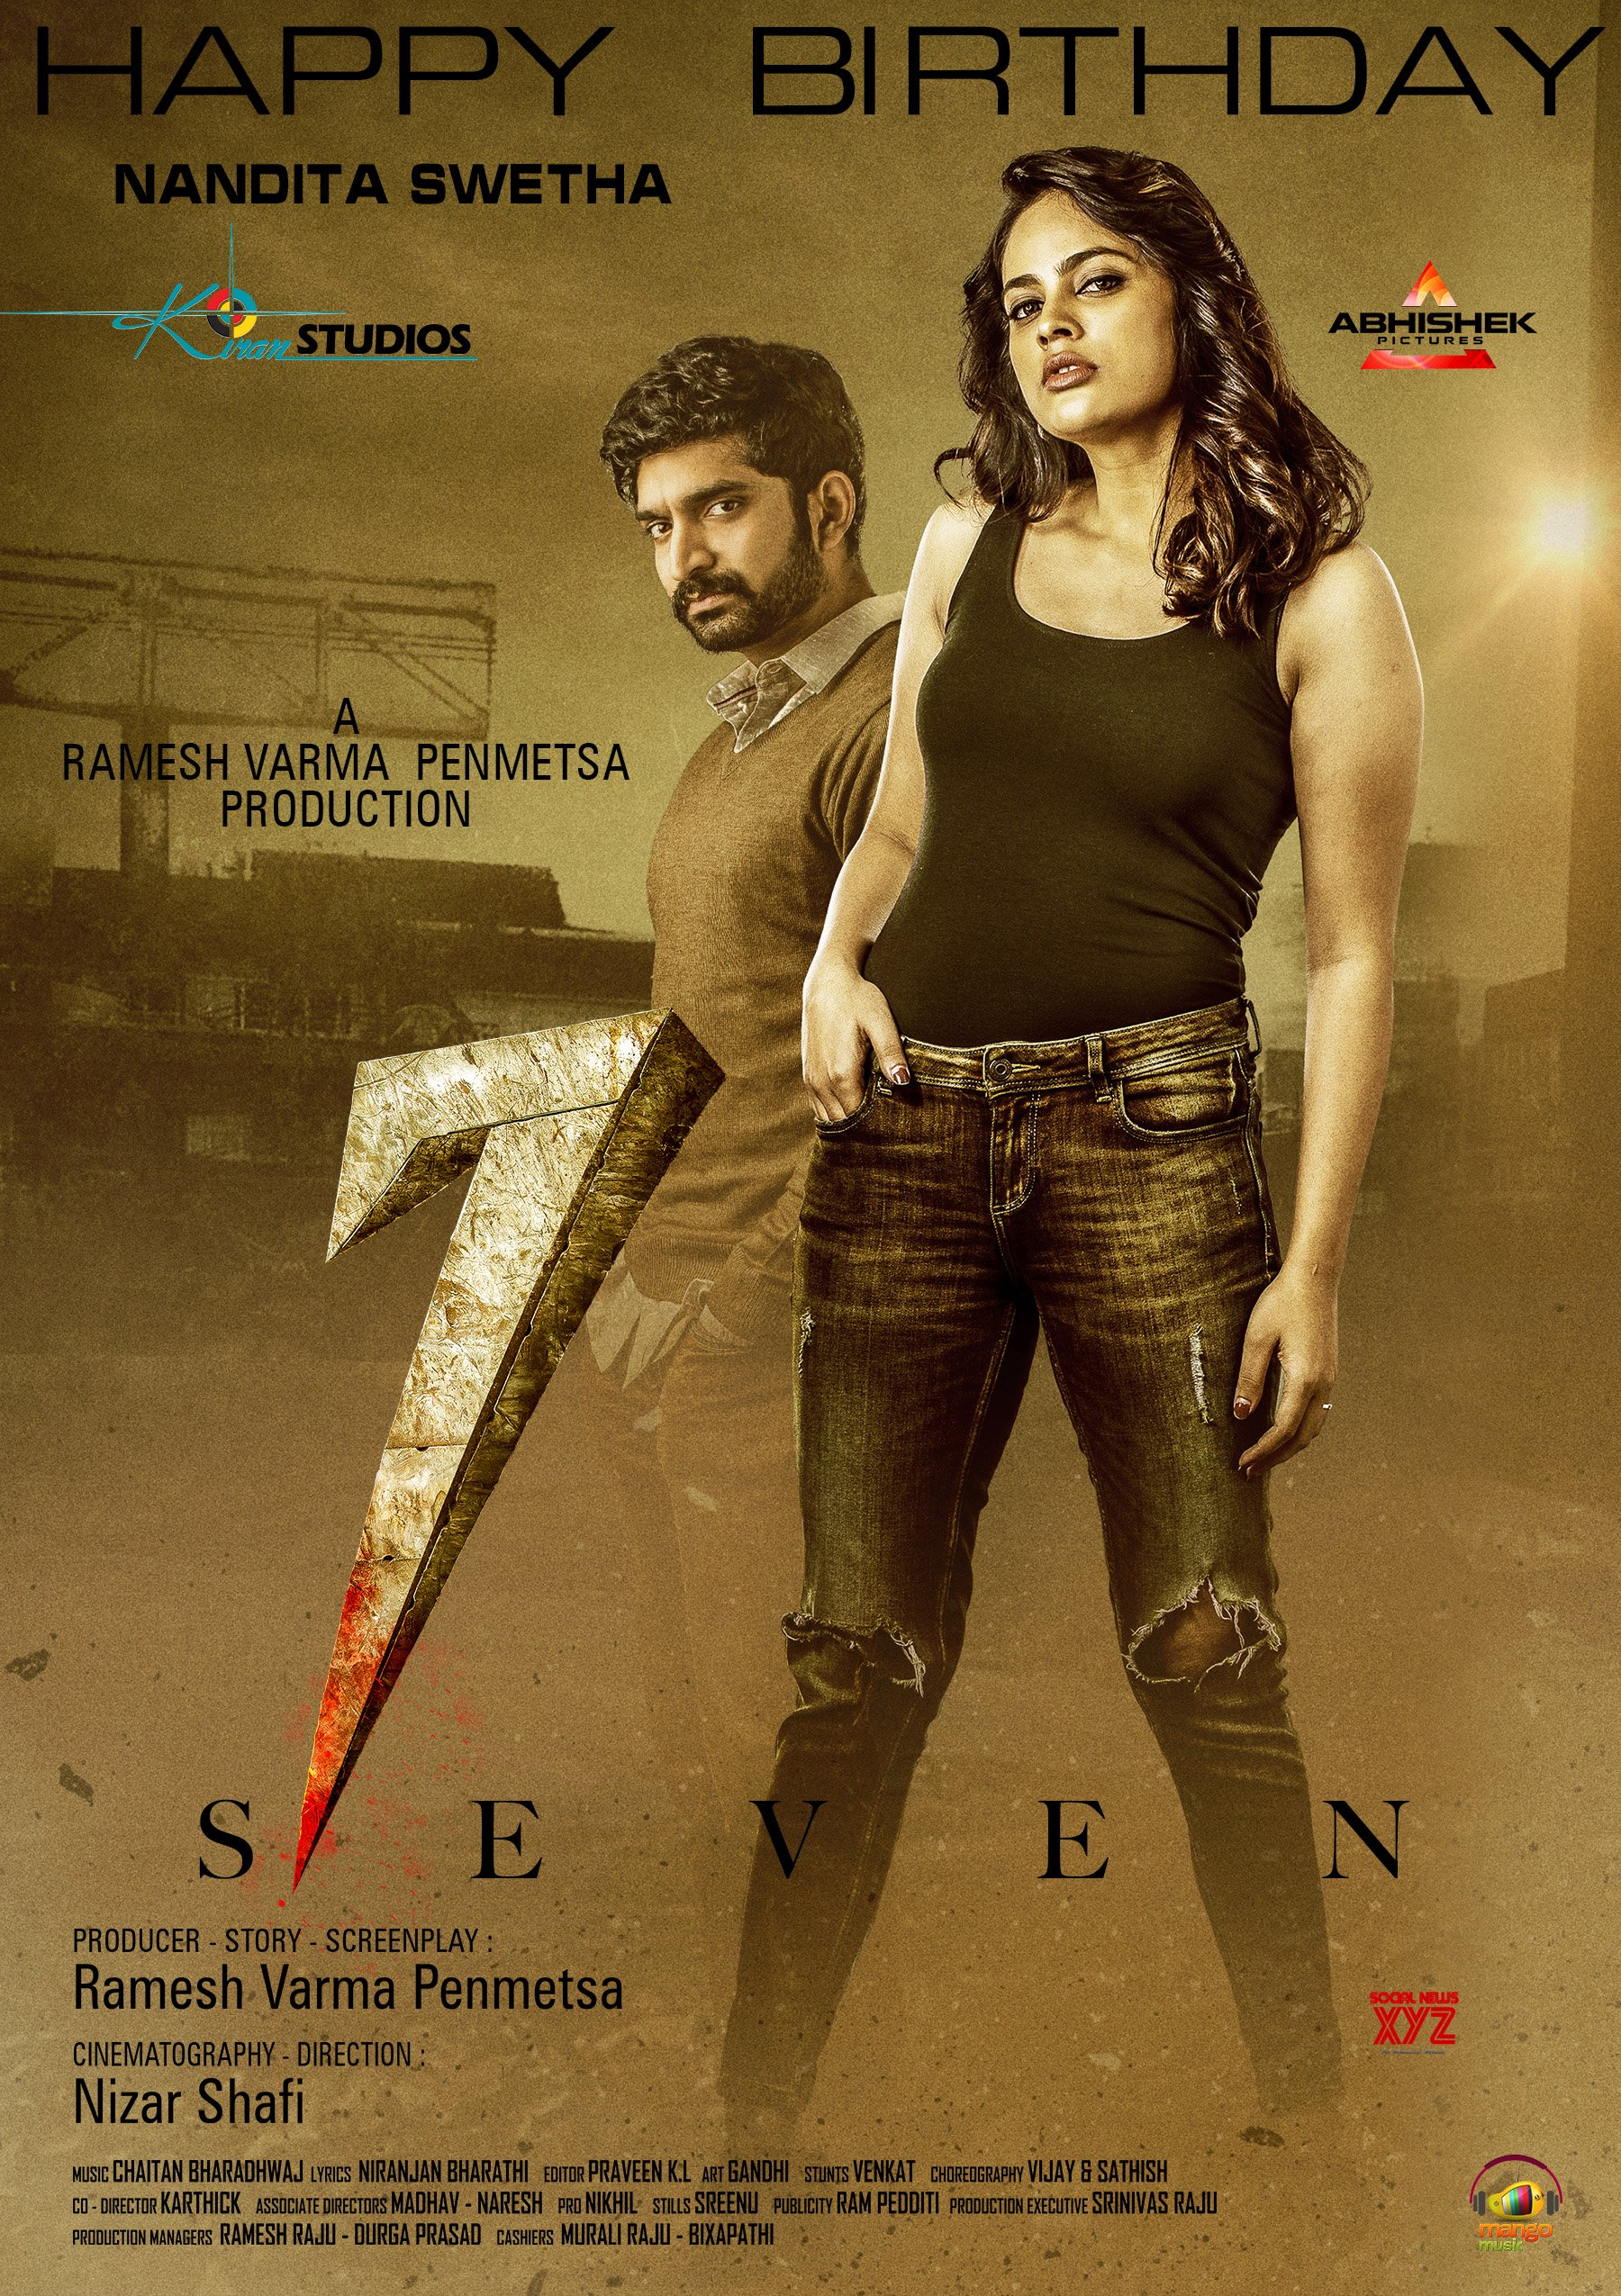 Abhishek Pictures Gets Worldwide Rights Of Seven Movie